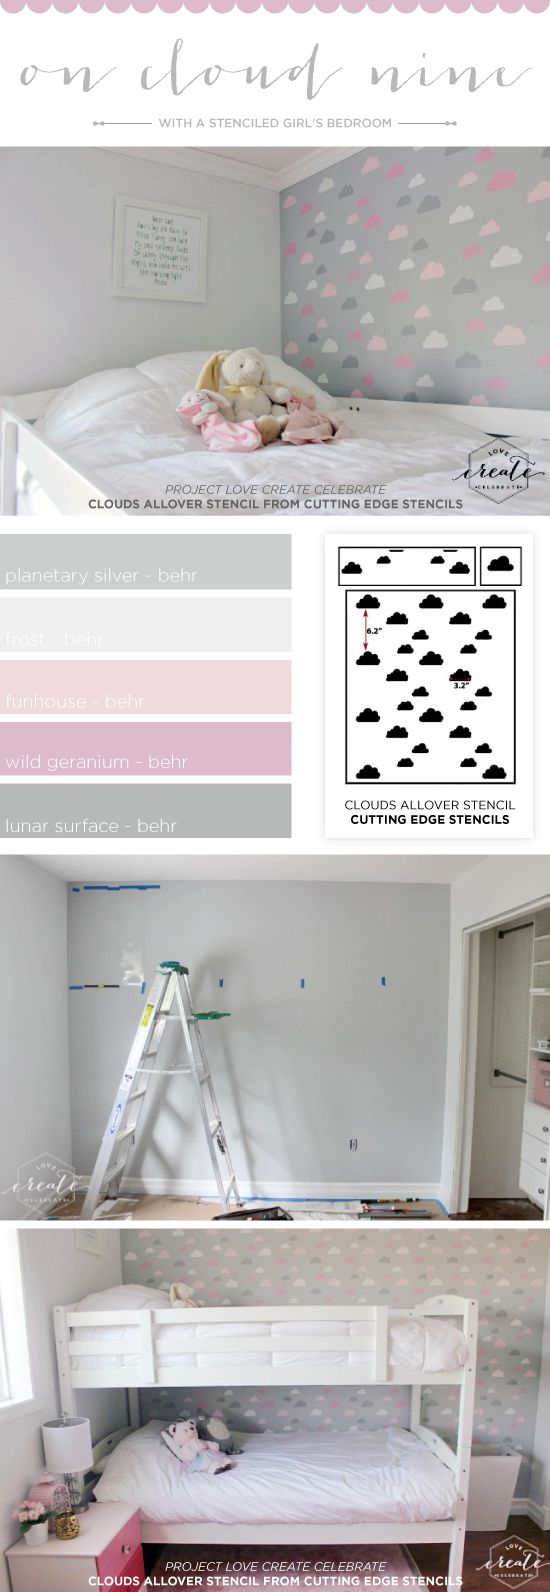 Bedroom Stencil Ideas. Cutting Edge Stencils shares a DIY stenciled girl s bedroom accent wall  using the Cloud Allover 343 best Girl Room Decor images on Pinterest